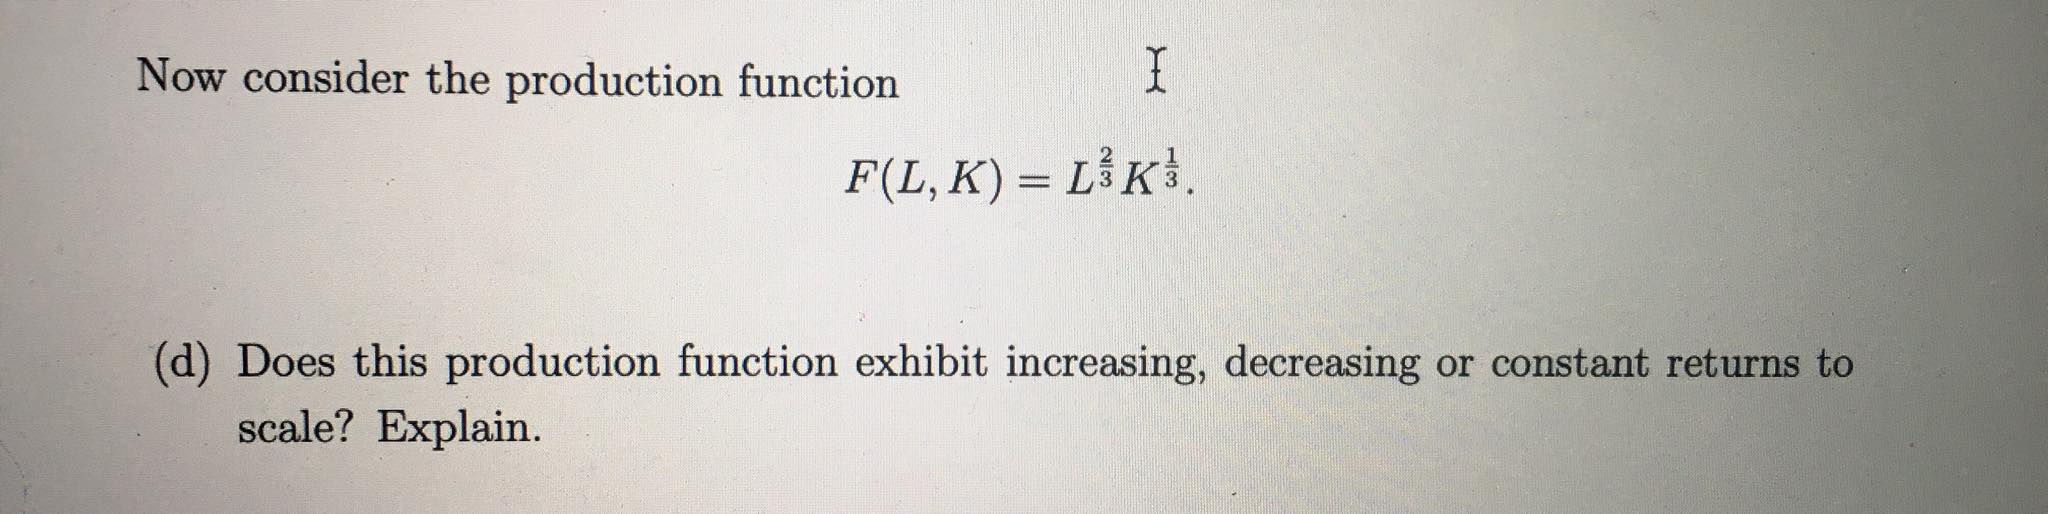 Now consider the production function I F(L, K) = LK. (d) Does this production function exhibit increasing, decreasing or cons